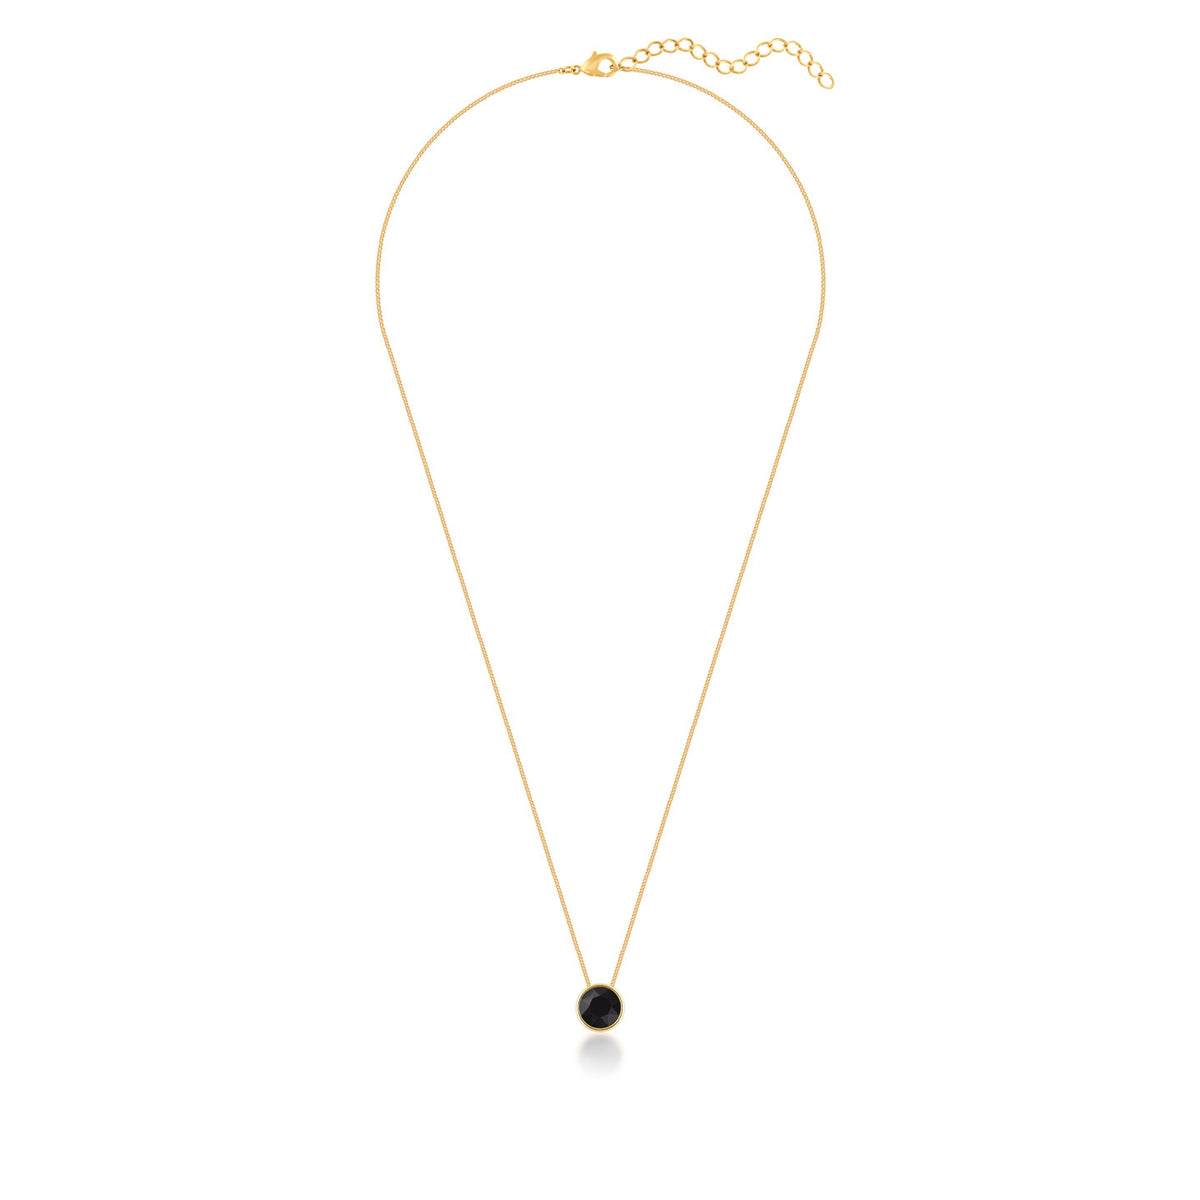 Harley Small Pendant Necklace with Black Jet Round Crystals from Swarovski Gold Plated - Ed Heart